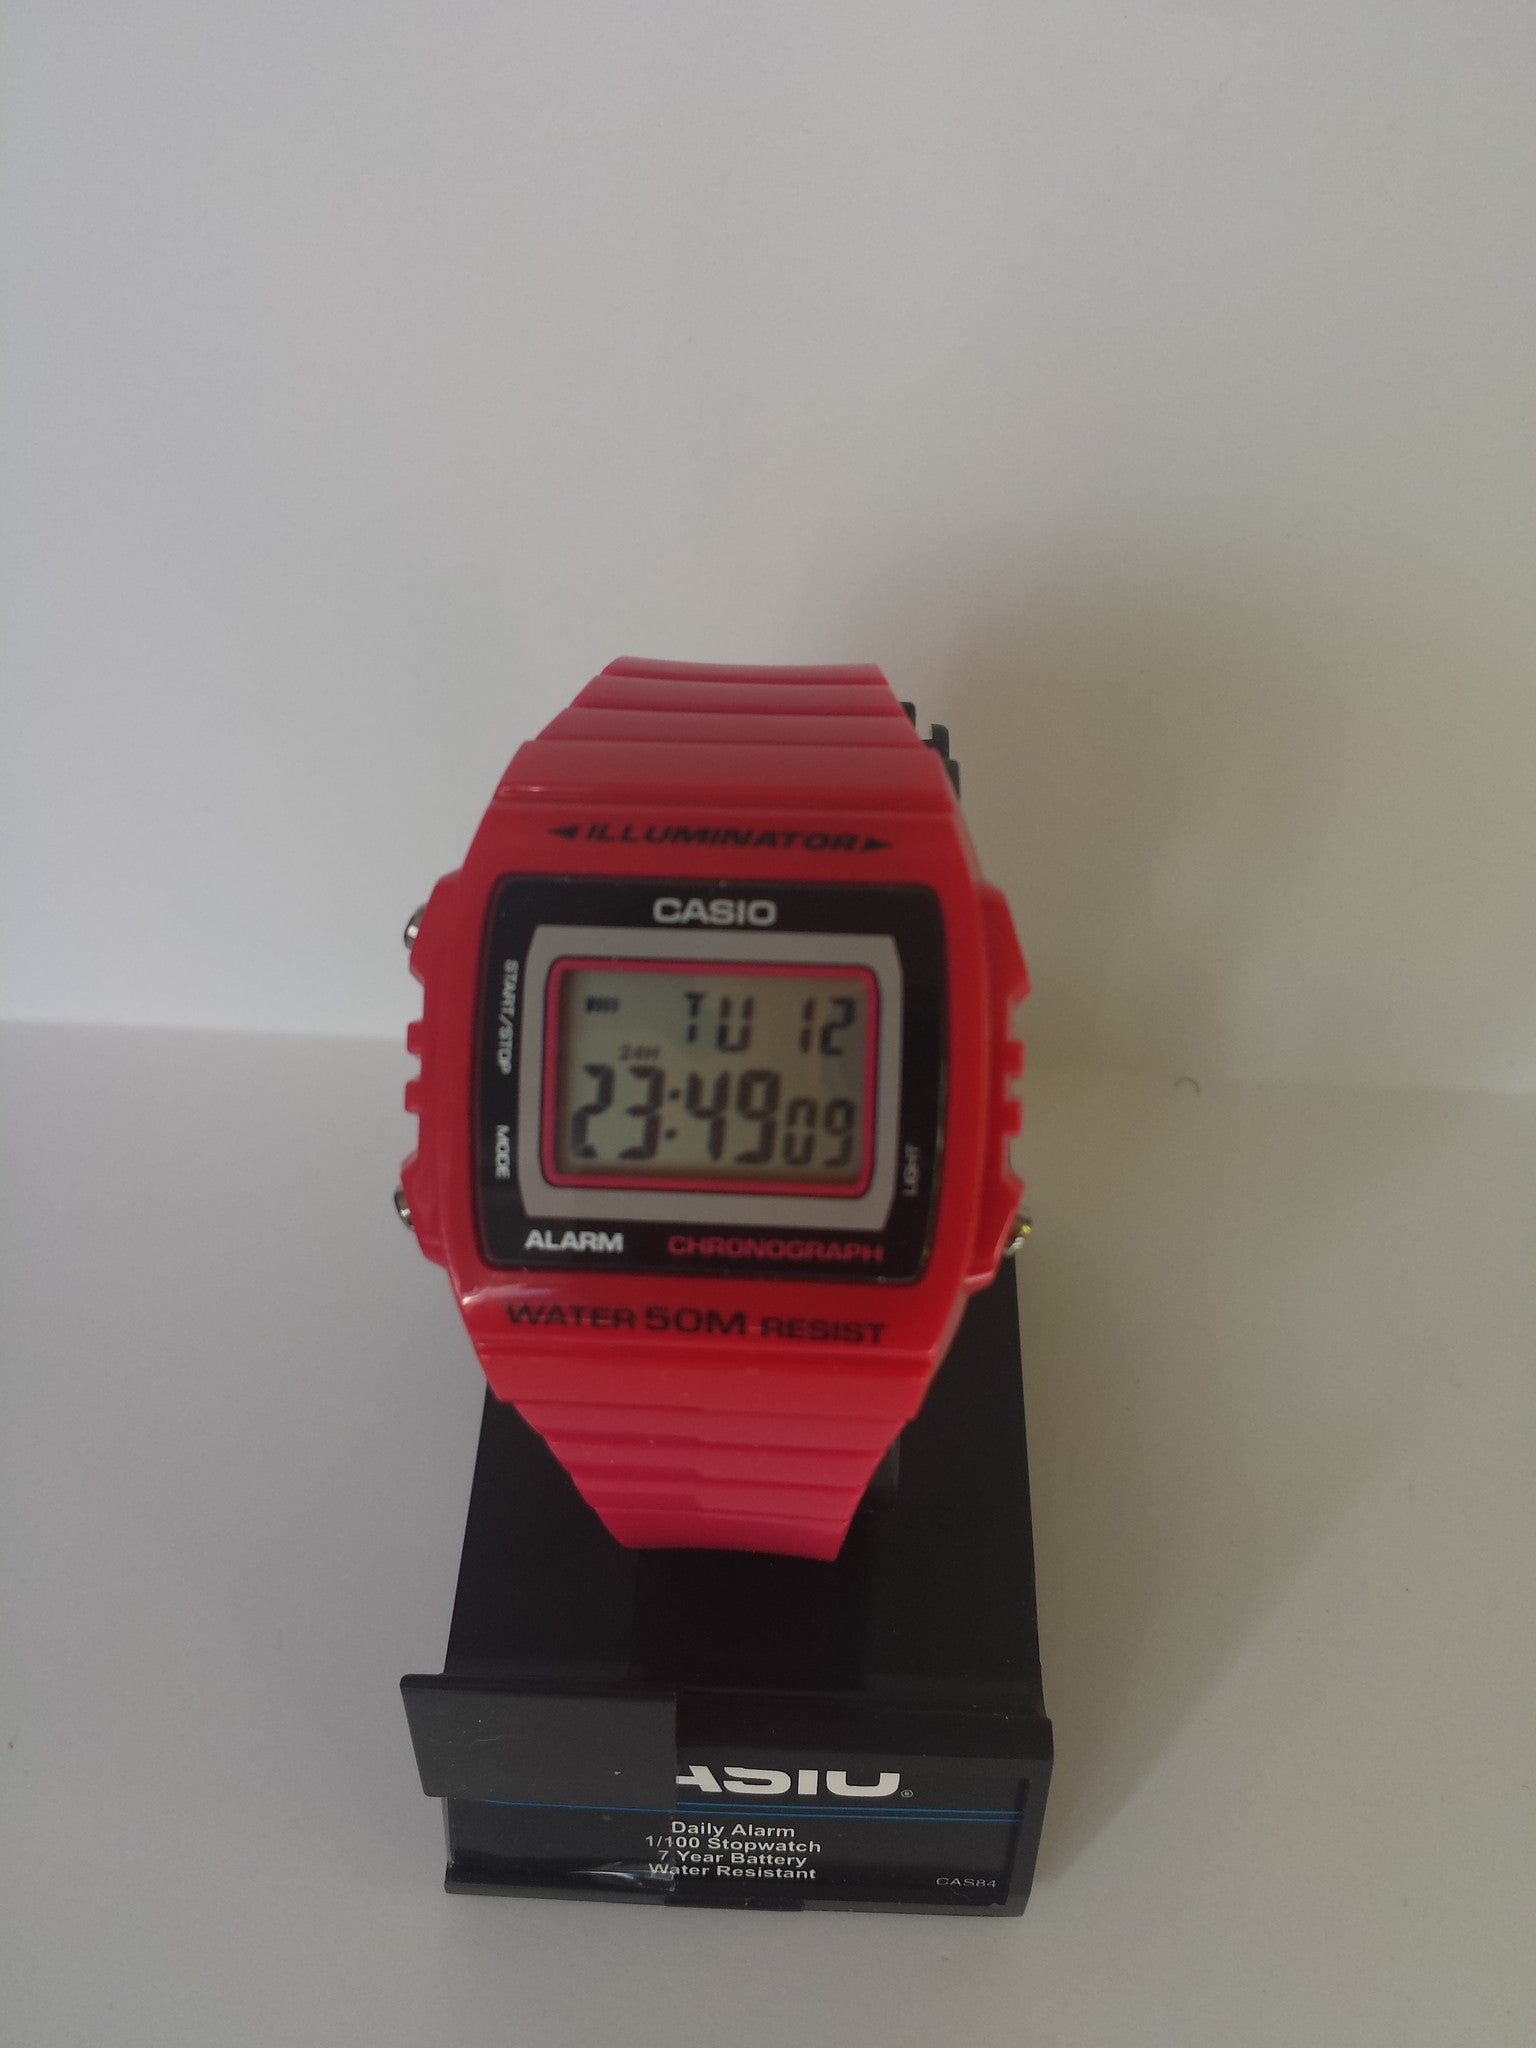 Hot Pink Chronograph Alarm Casio Watch